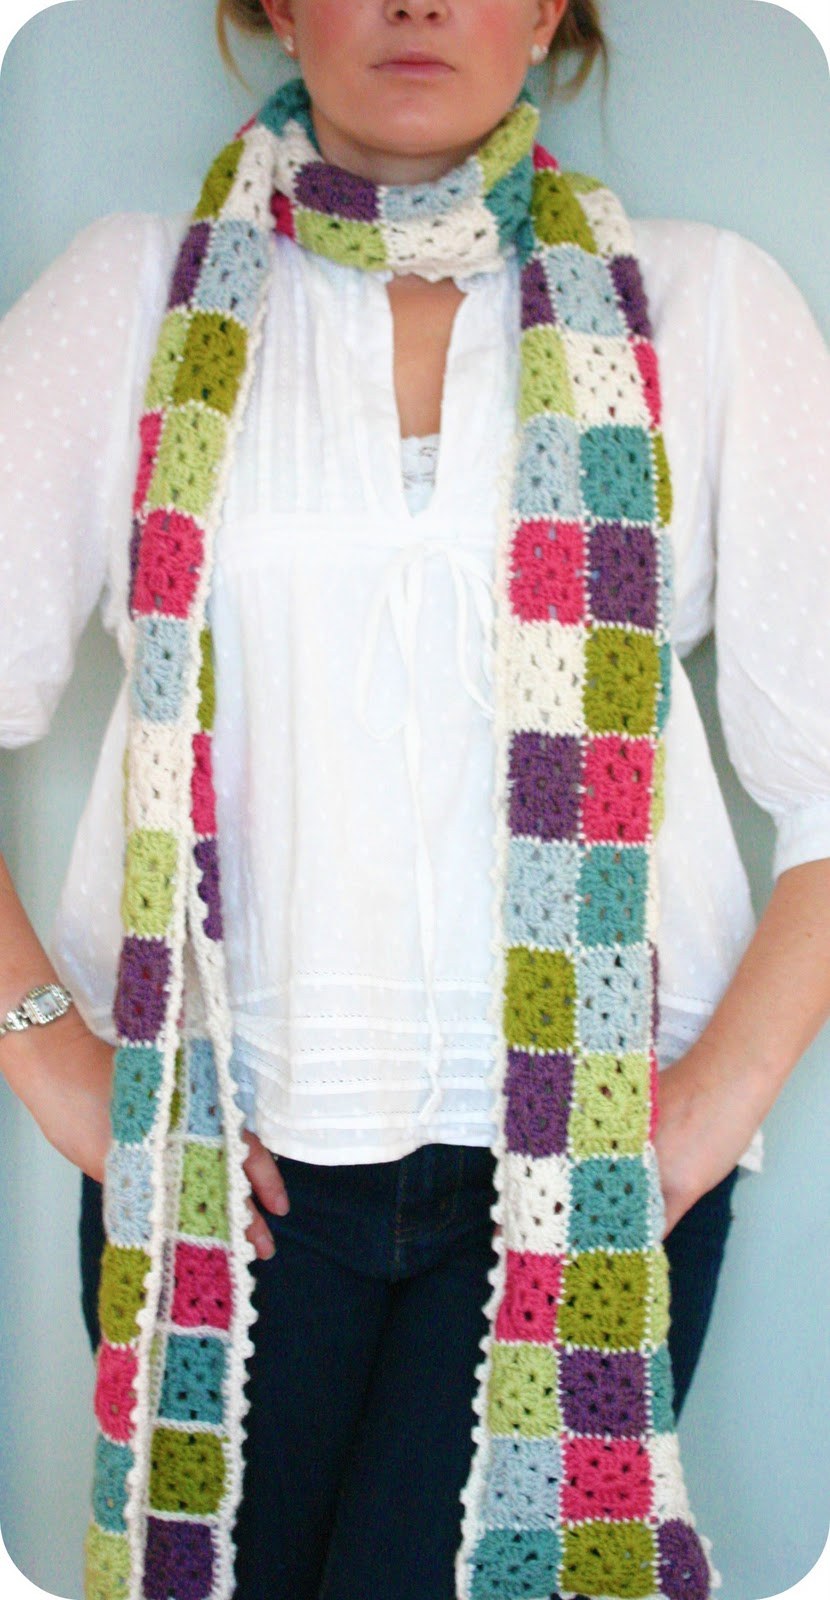 Coco Rose Diaries: I want this scarf! So cute! | tejidos | Pinterest ...